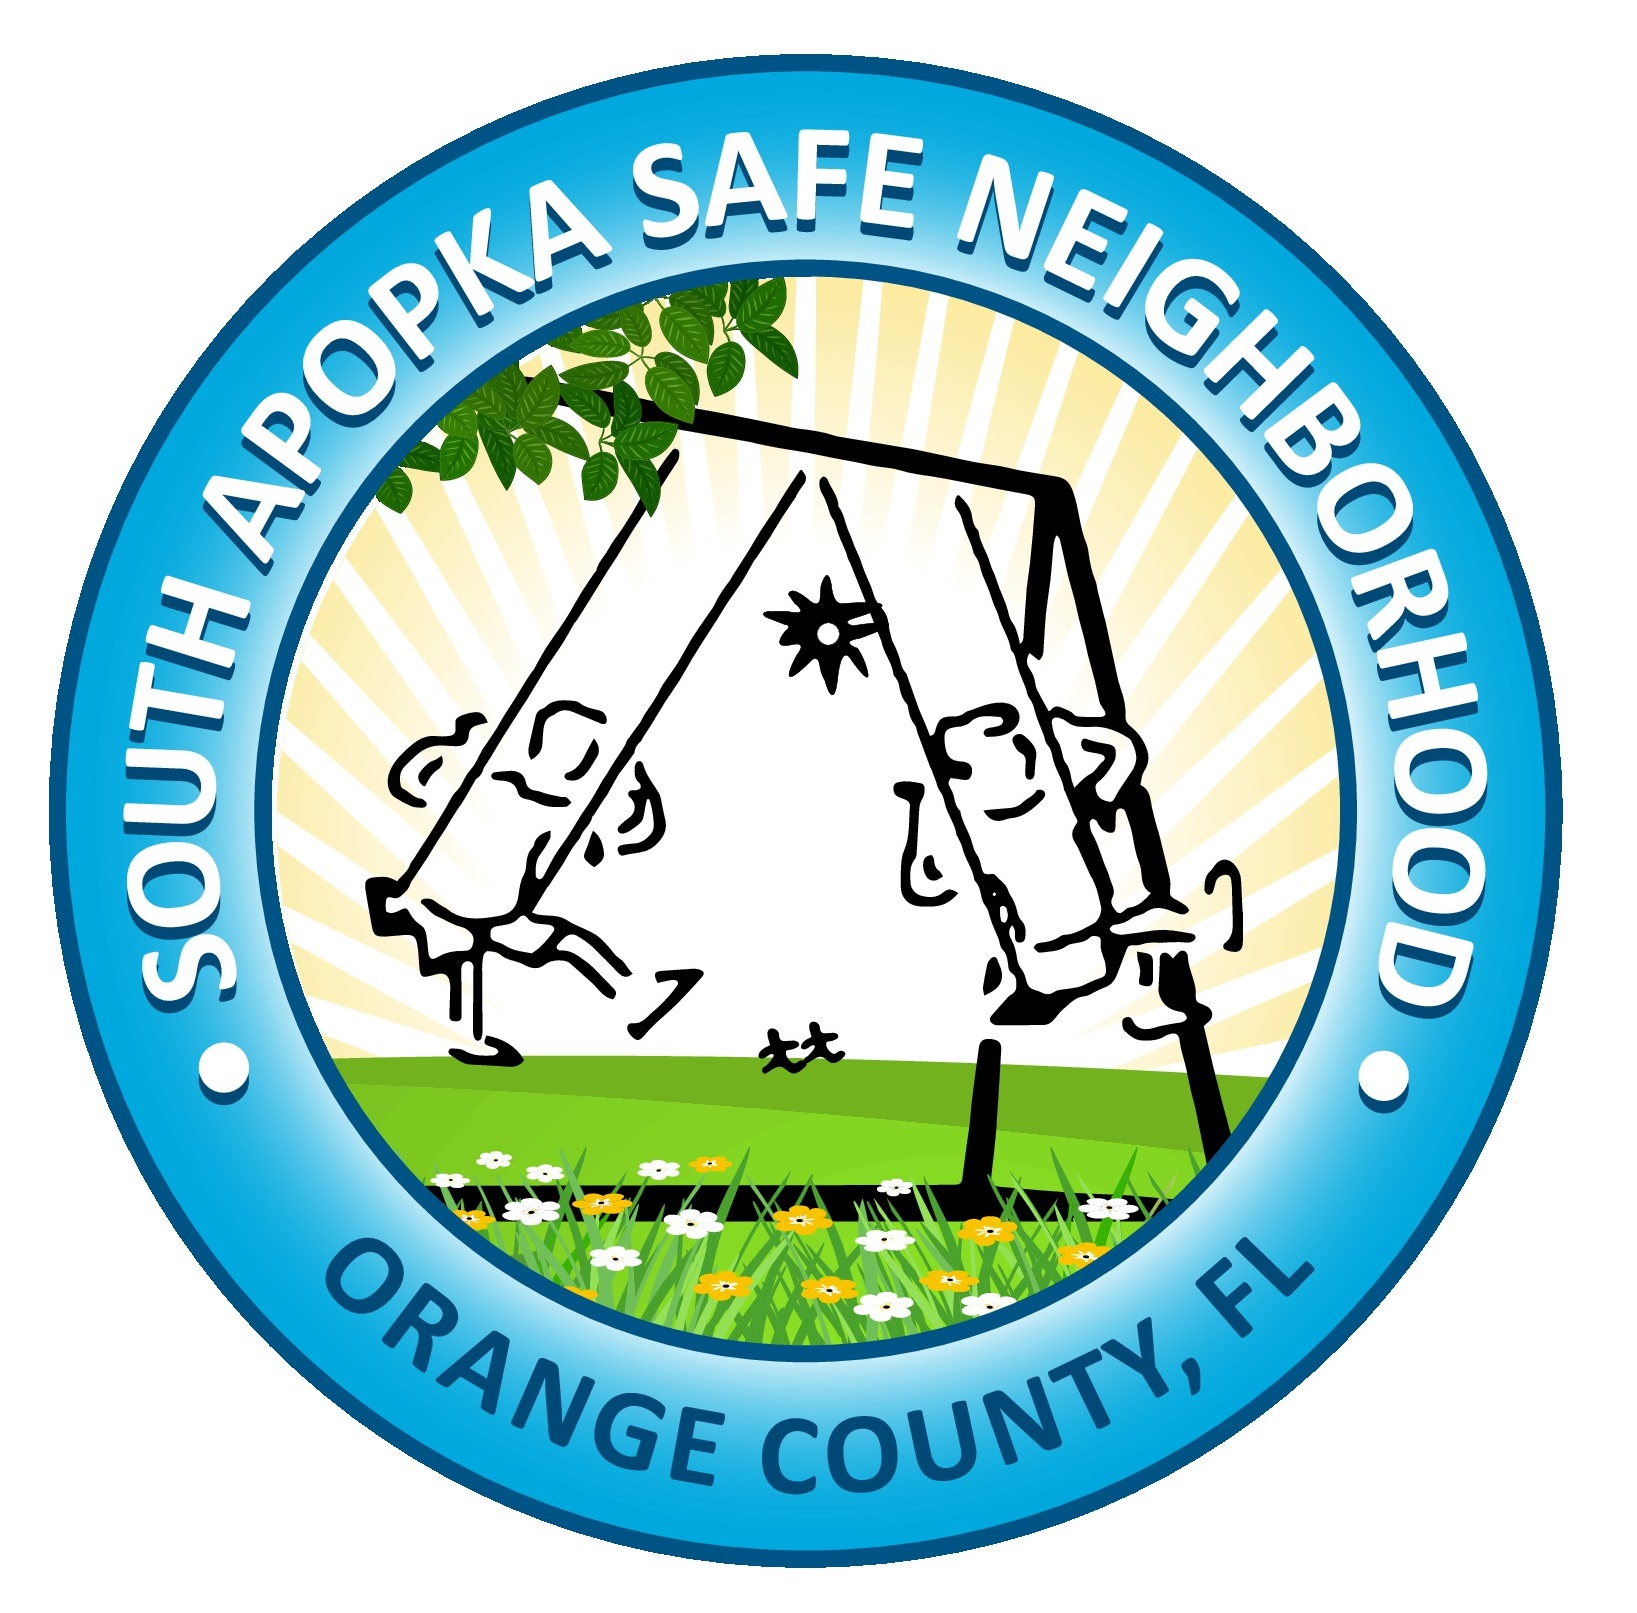 SoApopka-SafeNeighborhood-page-0